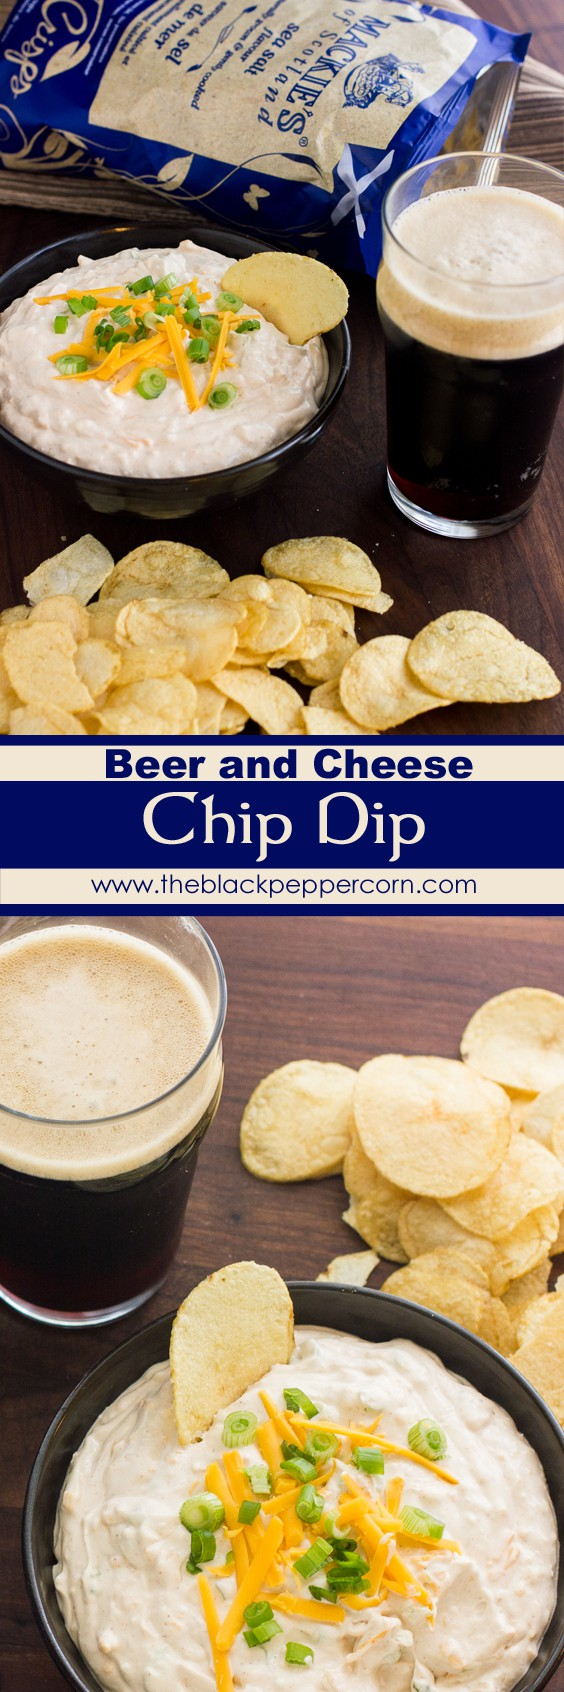 Beer and Cheese Chip Dip recipe